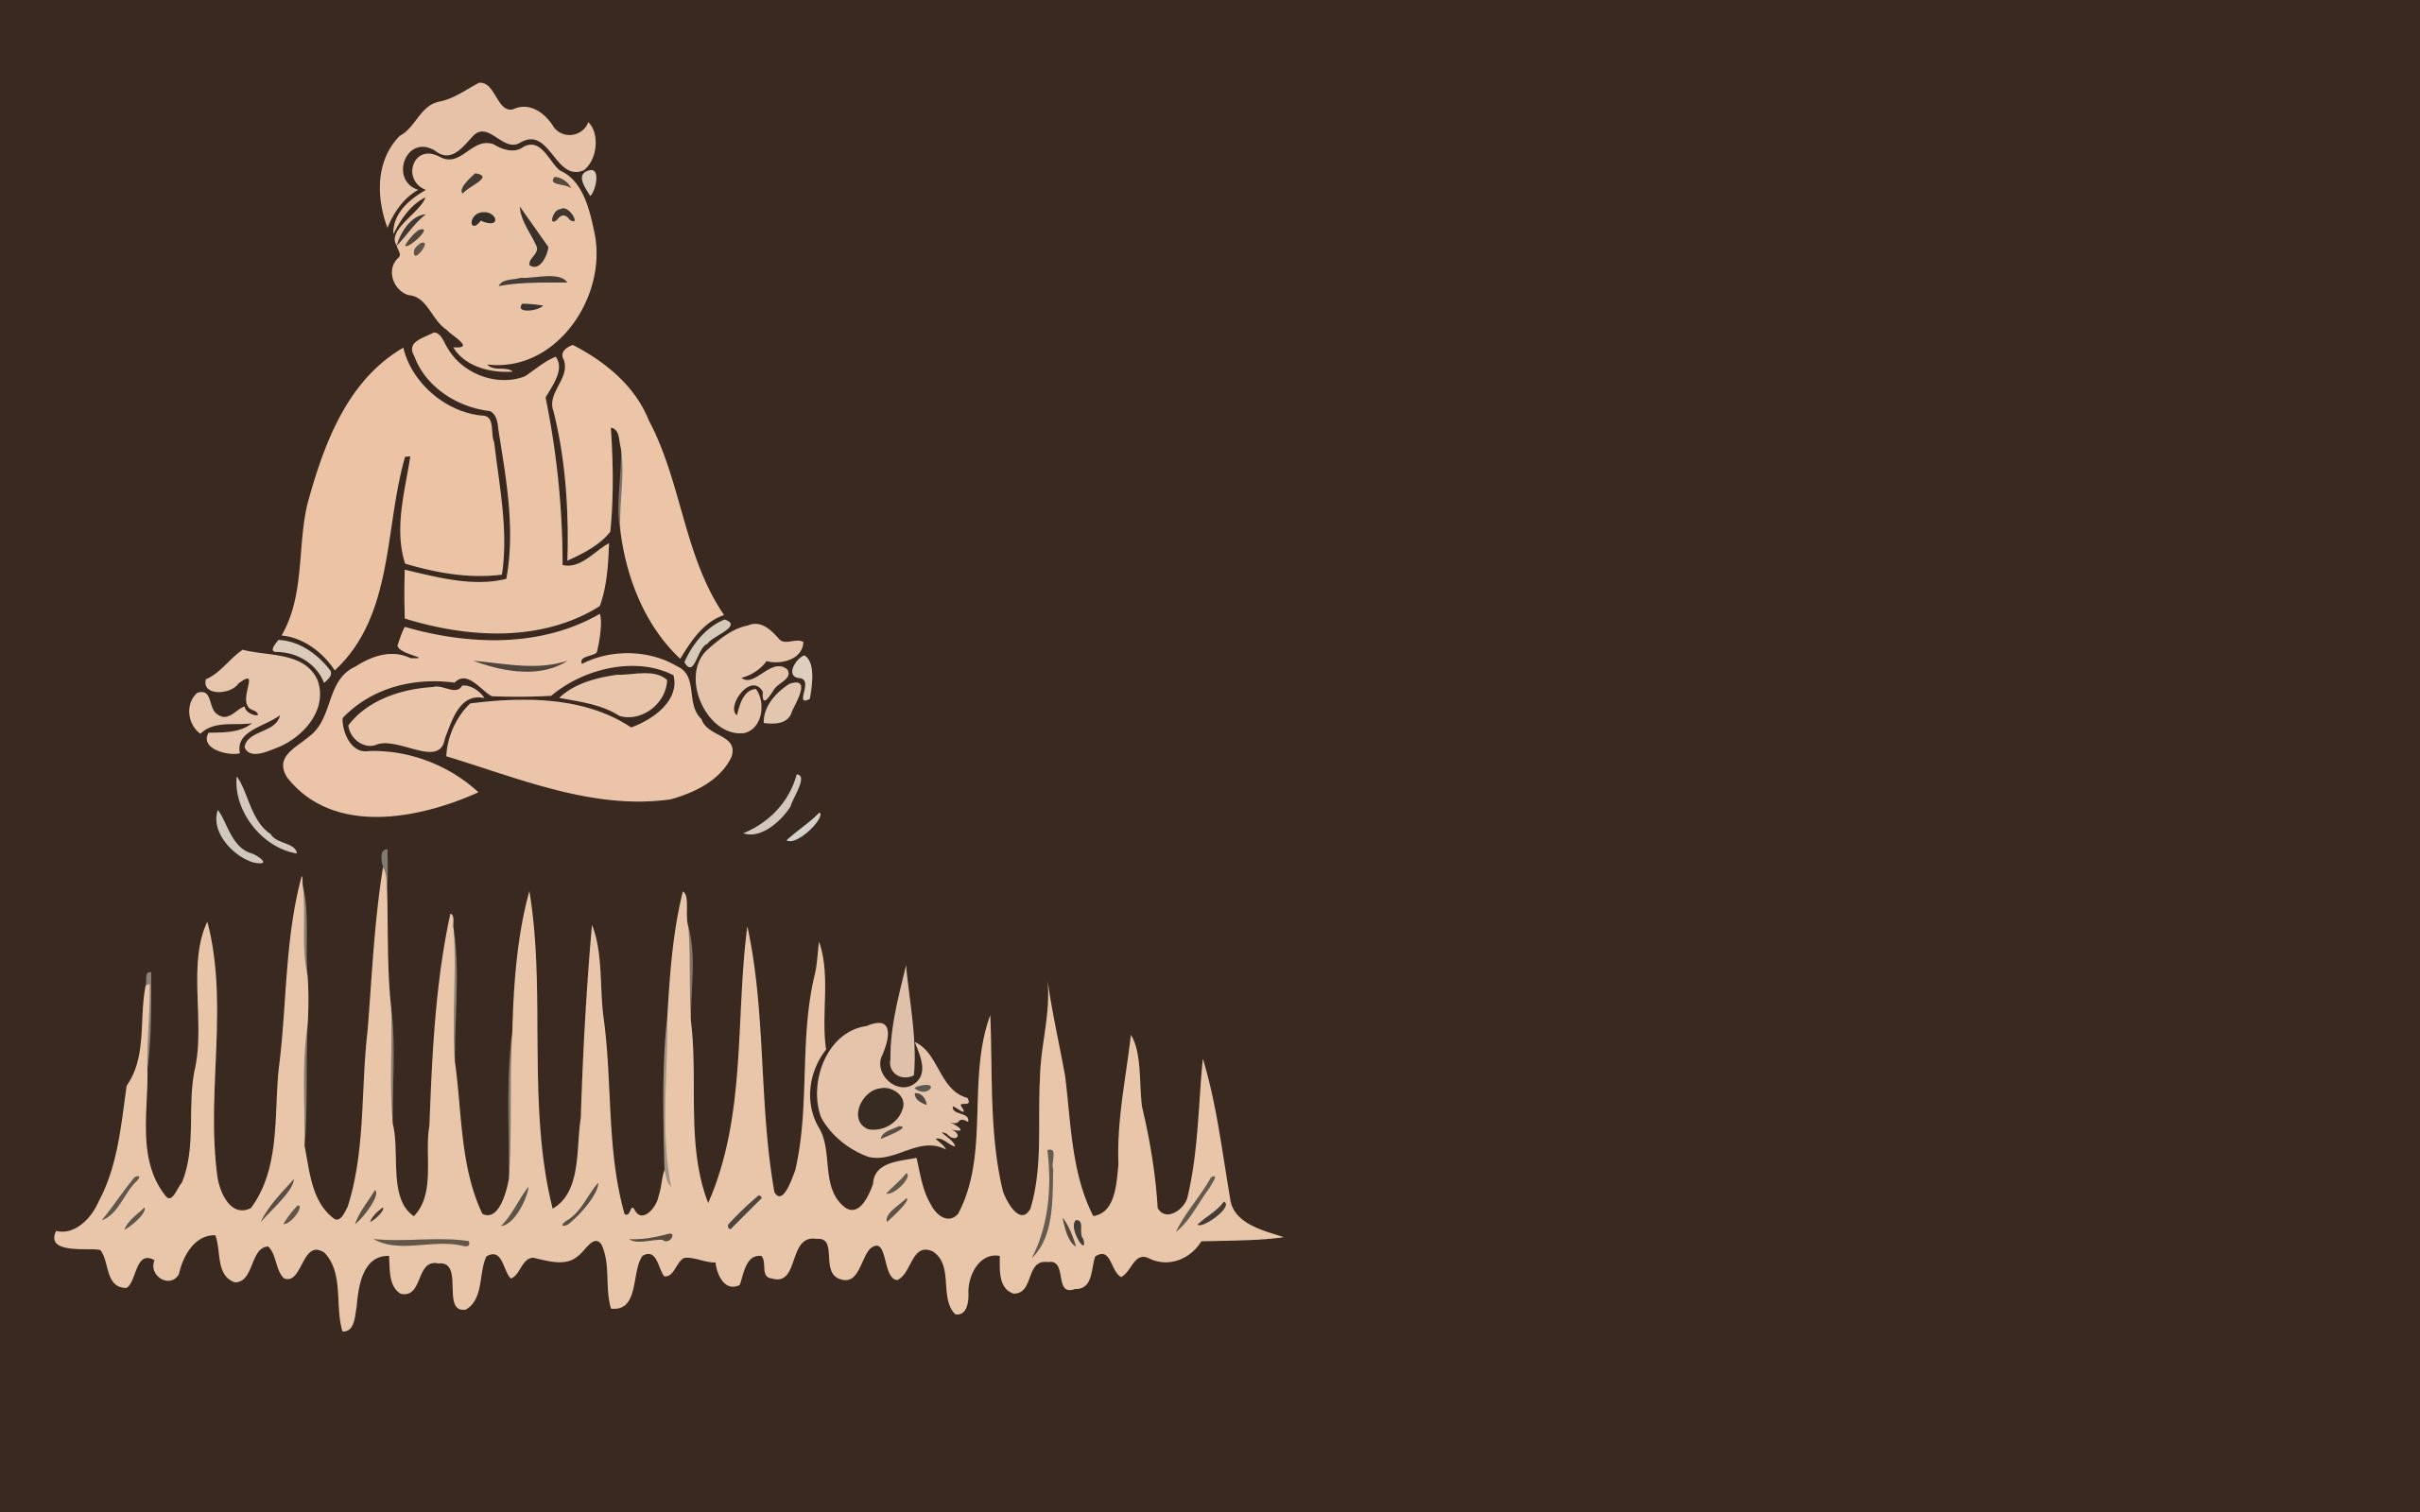 2560x1600 Fallout brown Vault Boy simplistic simple pip boy wallpaper background